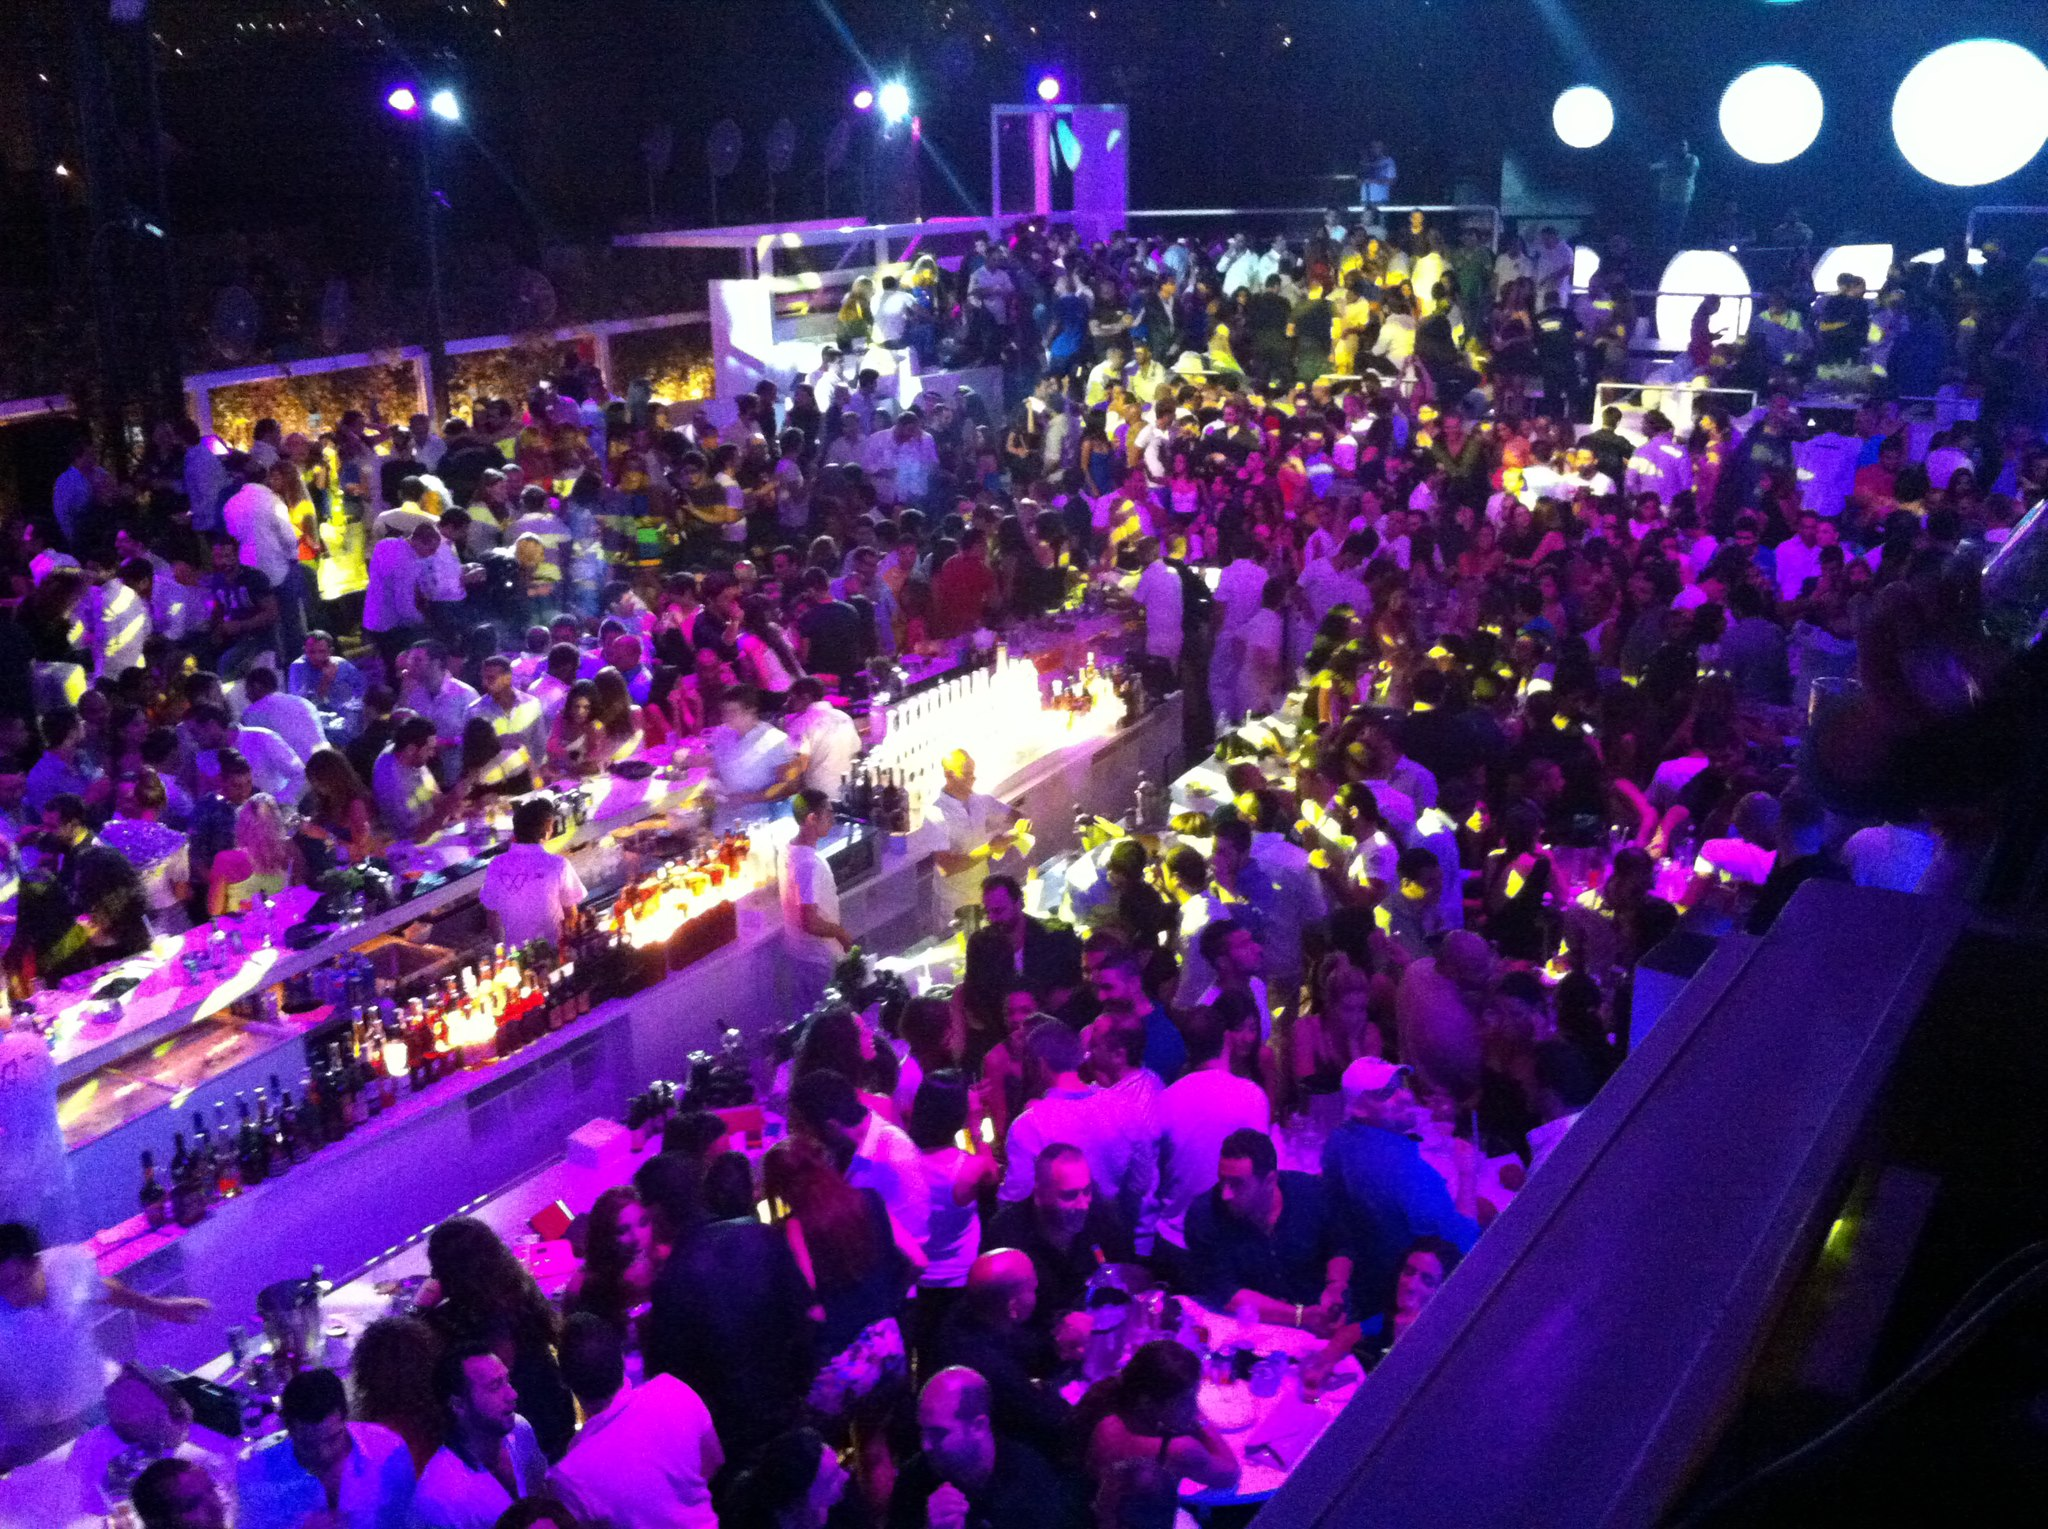 Club White Beirut Lebanon